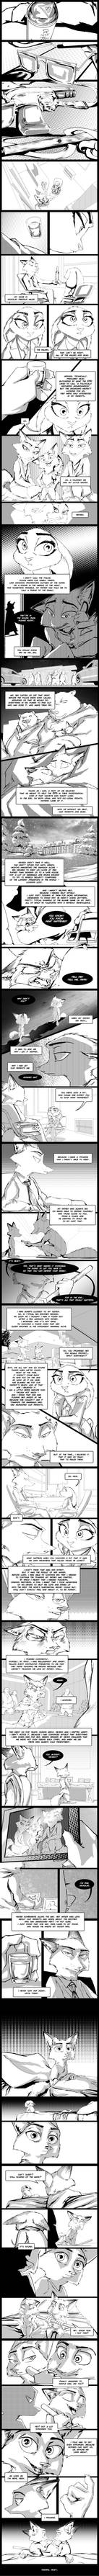 Sunderance - Chapter 25.1: Scout's Honor